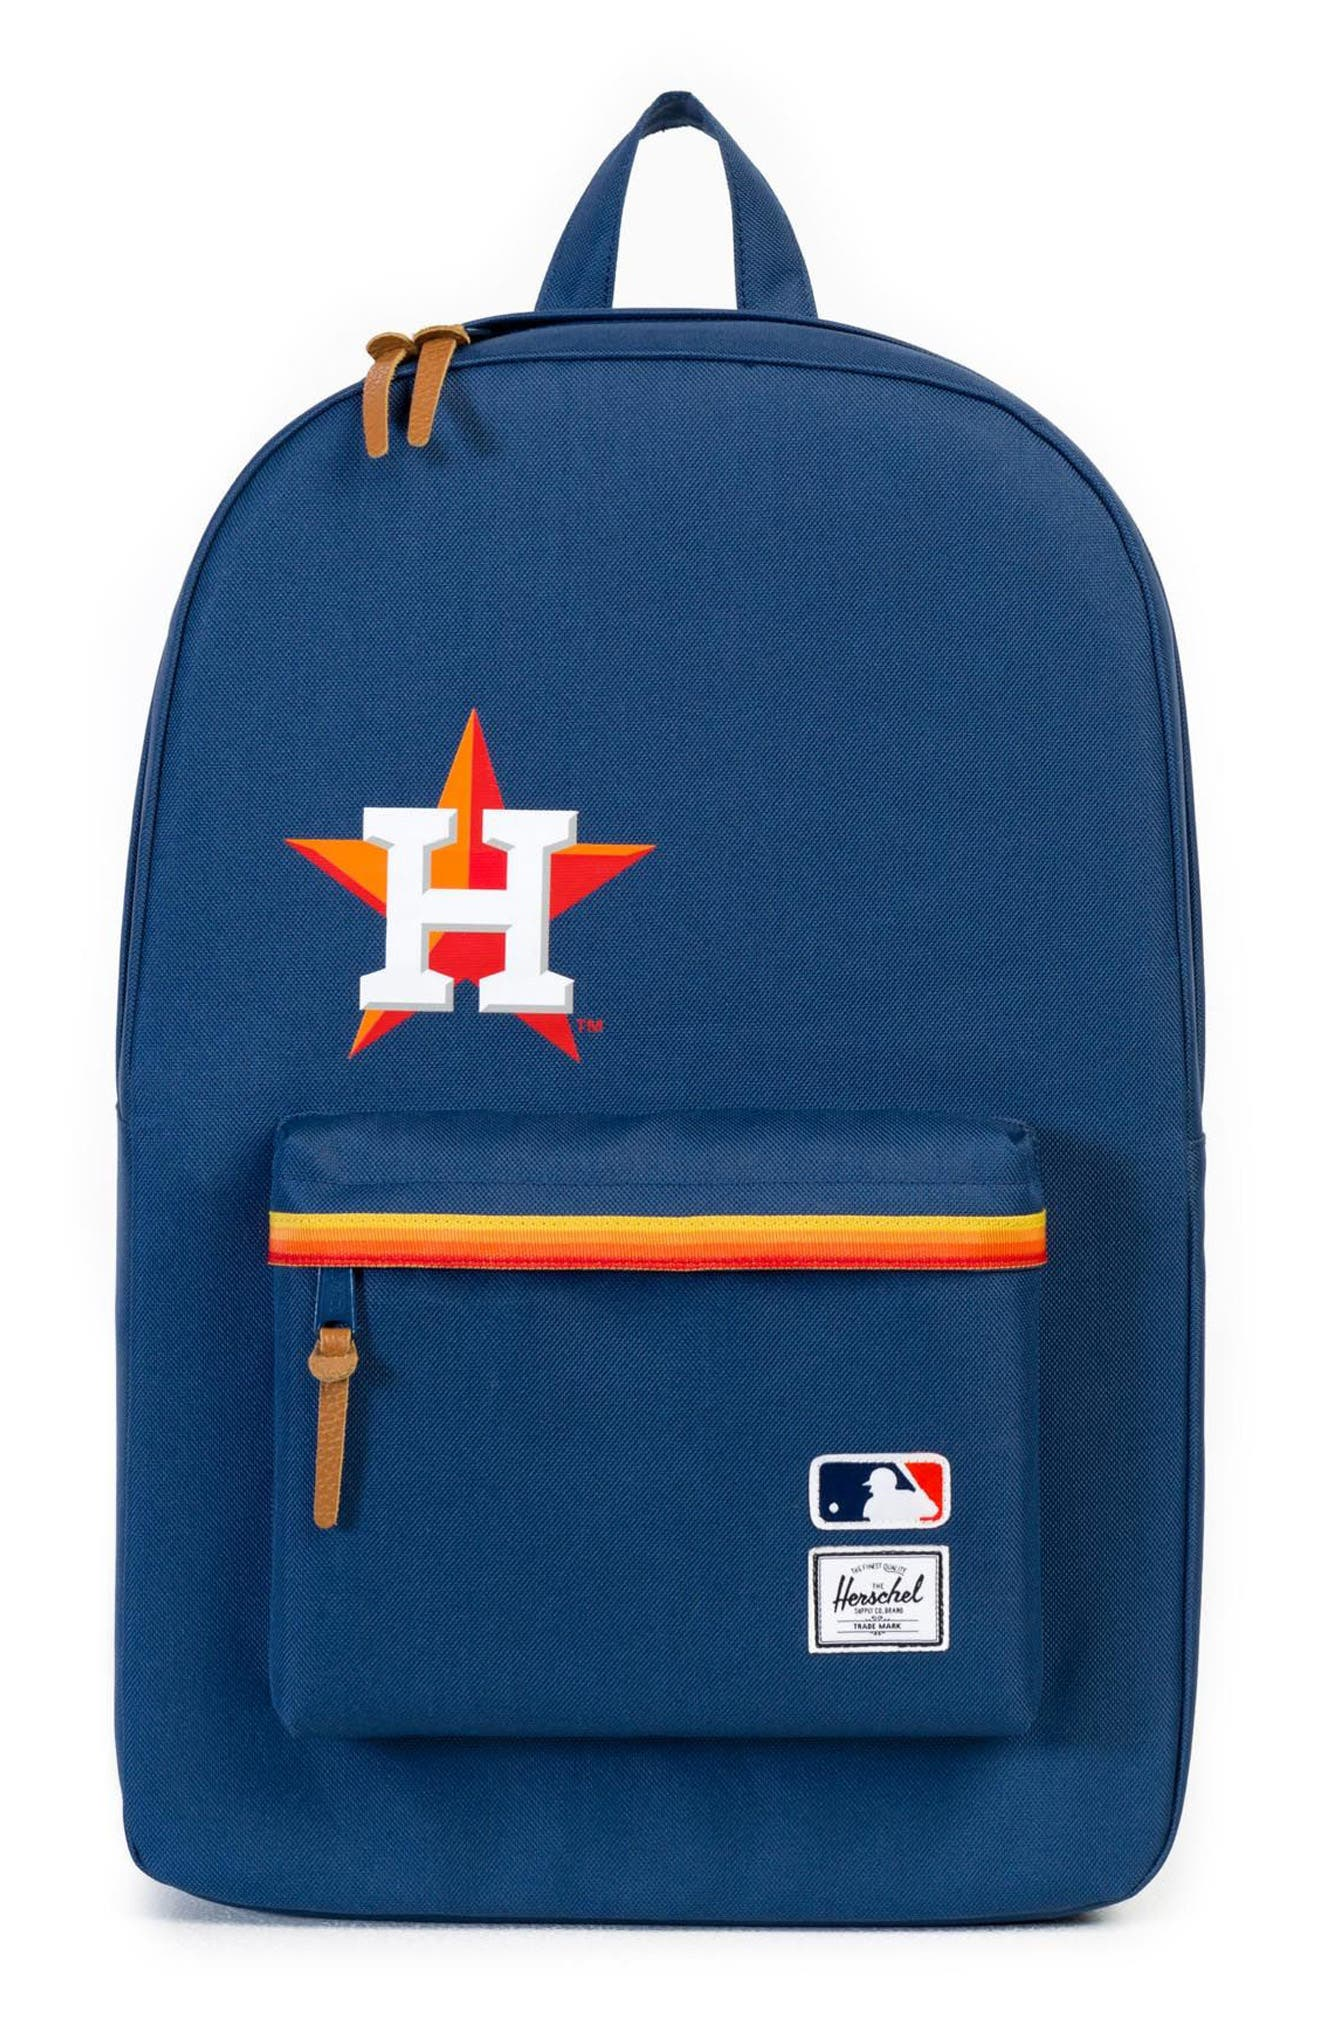 Heritage - MLB American League Backpack,                         Main,                         color, Houston Astros